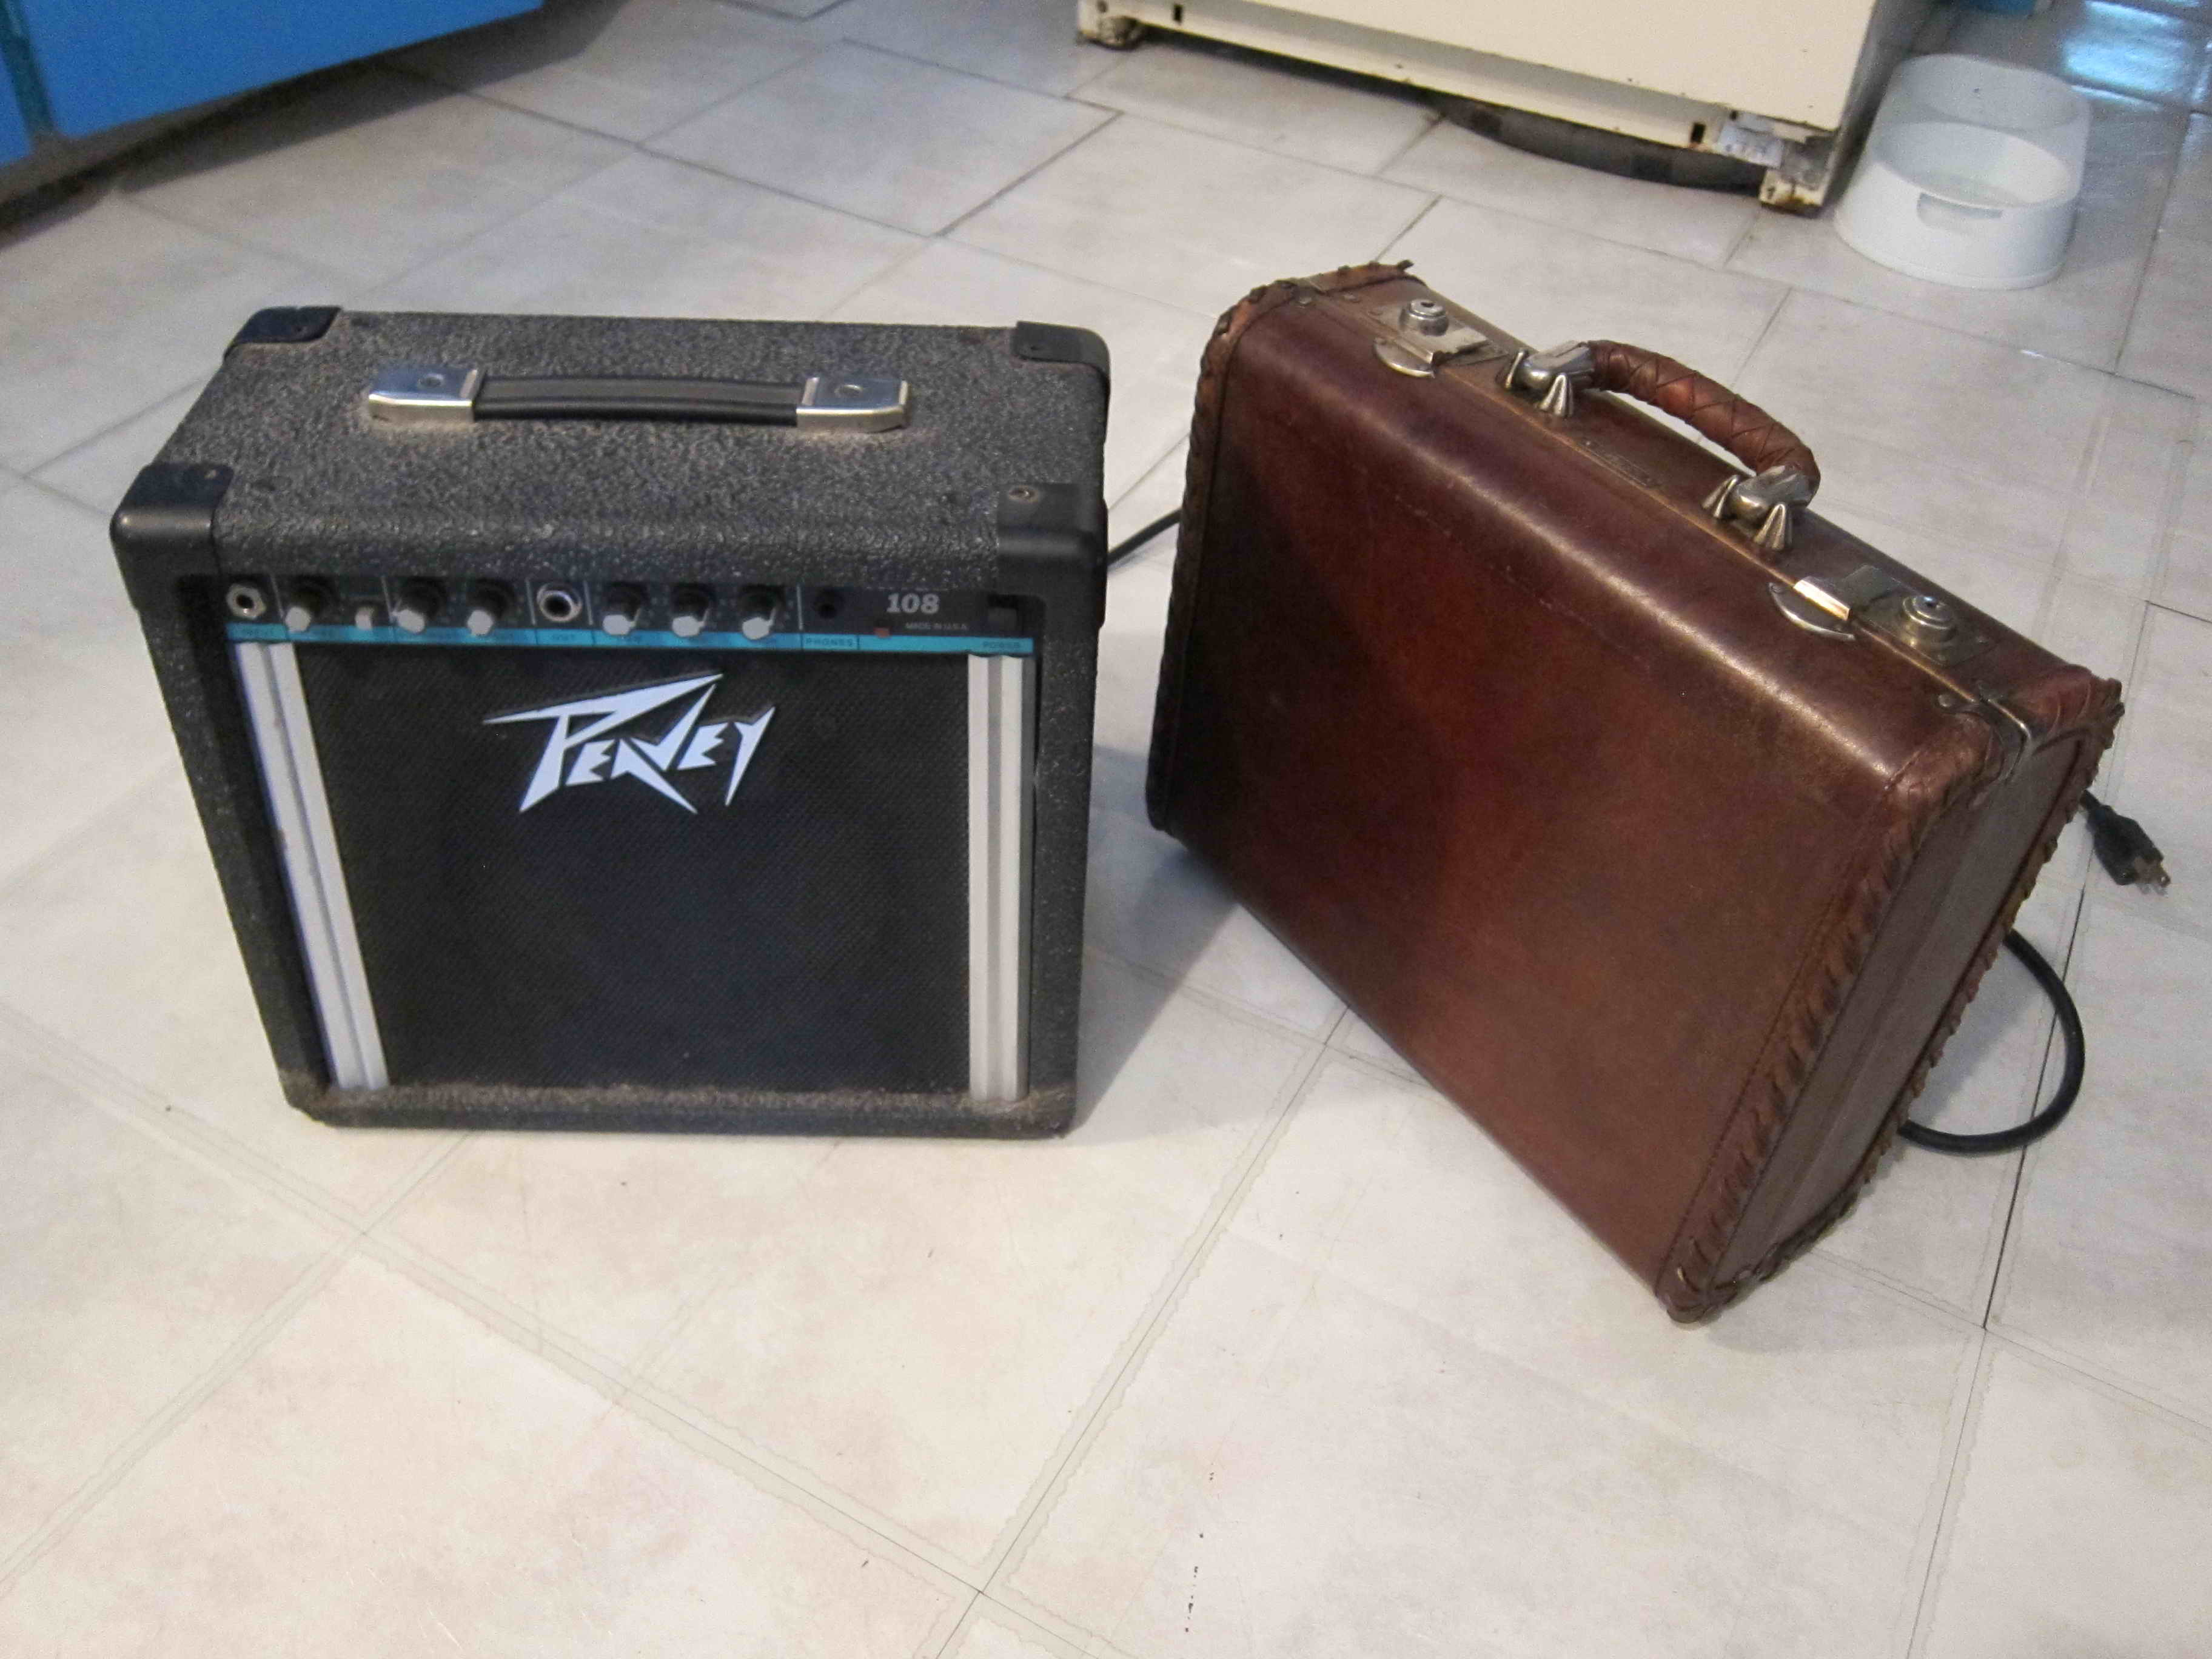 Green living: Amp and Suitcase